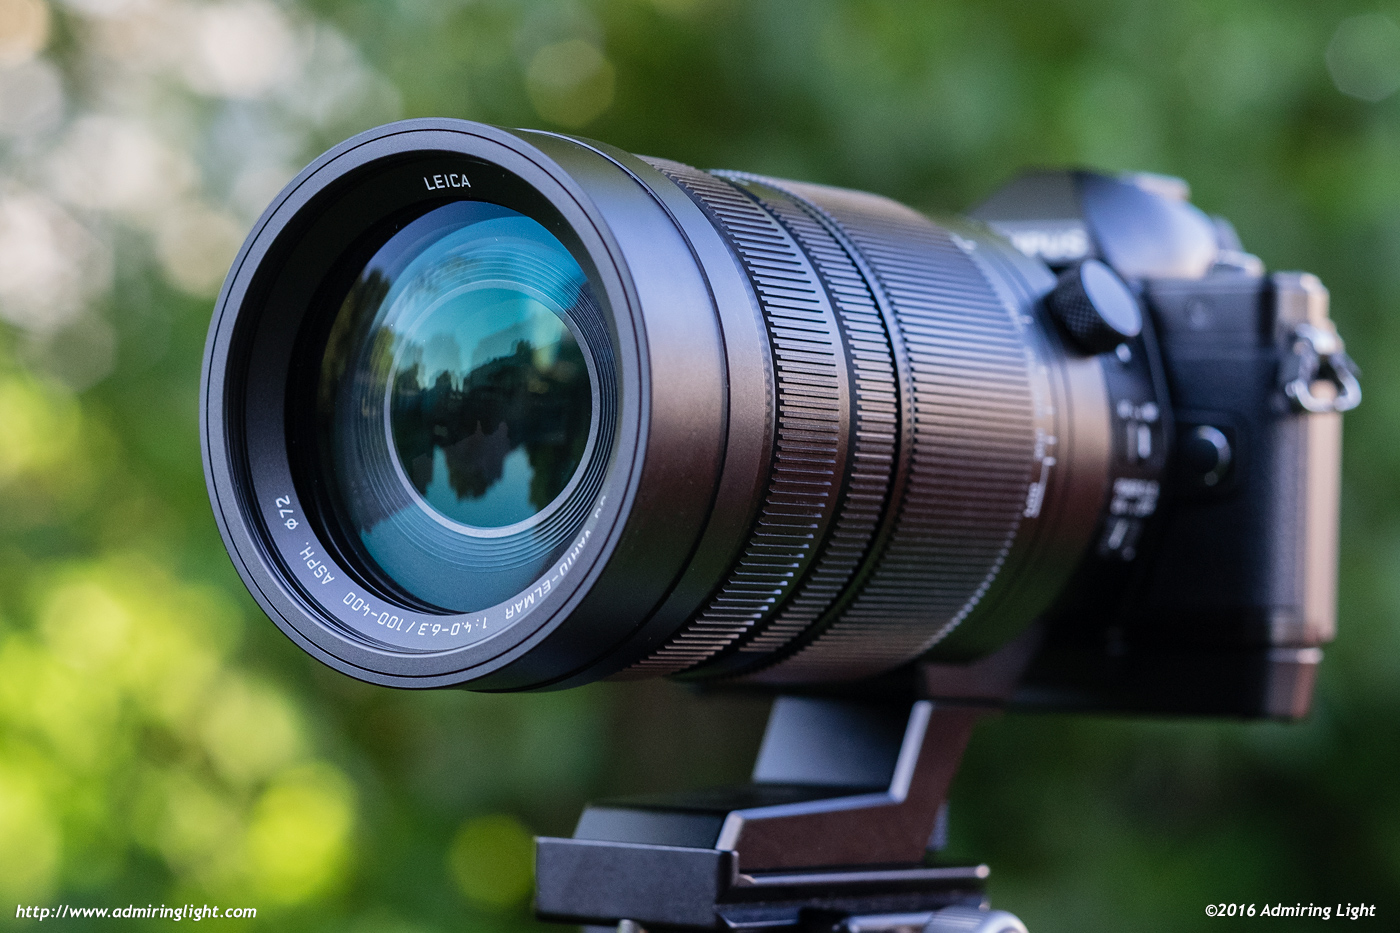 The Panasonic Leica 100-400mm f/4-6.3 OIS on the Olympus E-M10 Mark II